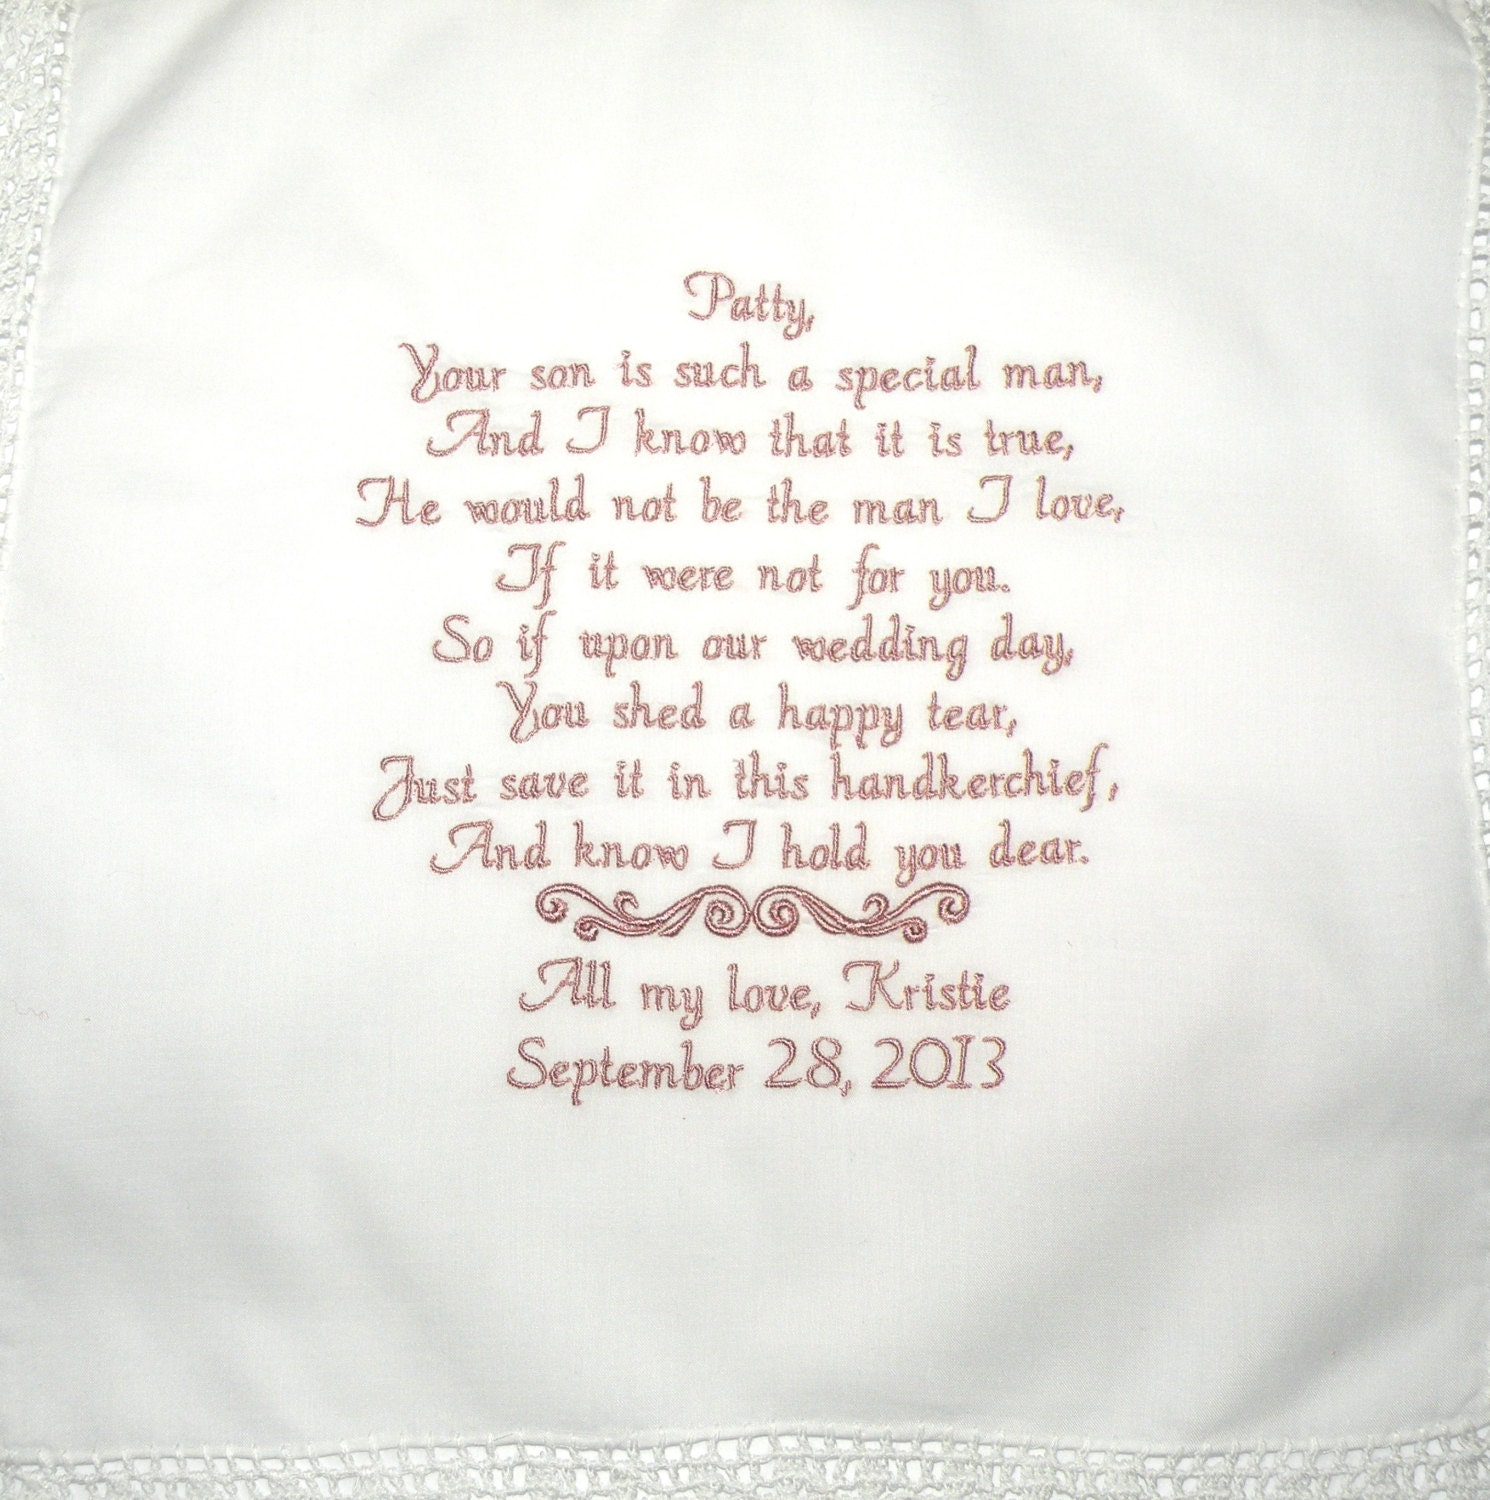 Sister In Law Poems Personalized hanky poem sayingFuture Sister In Law Poems